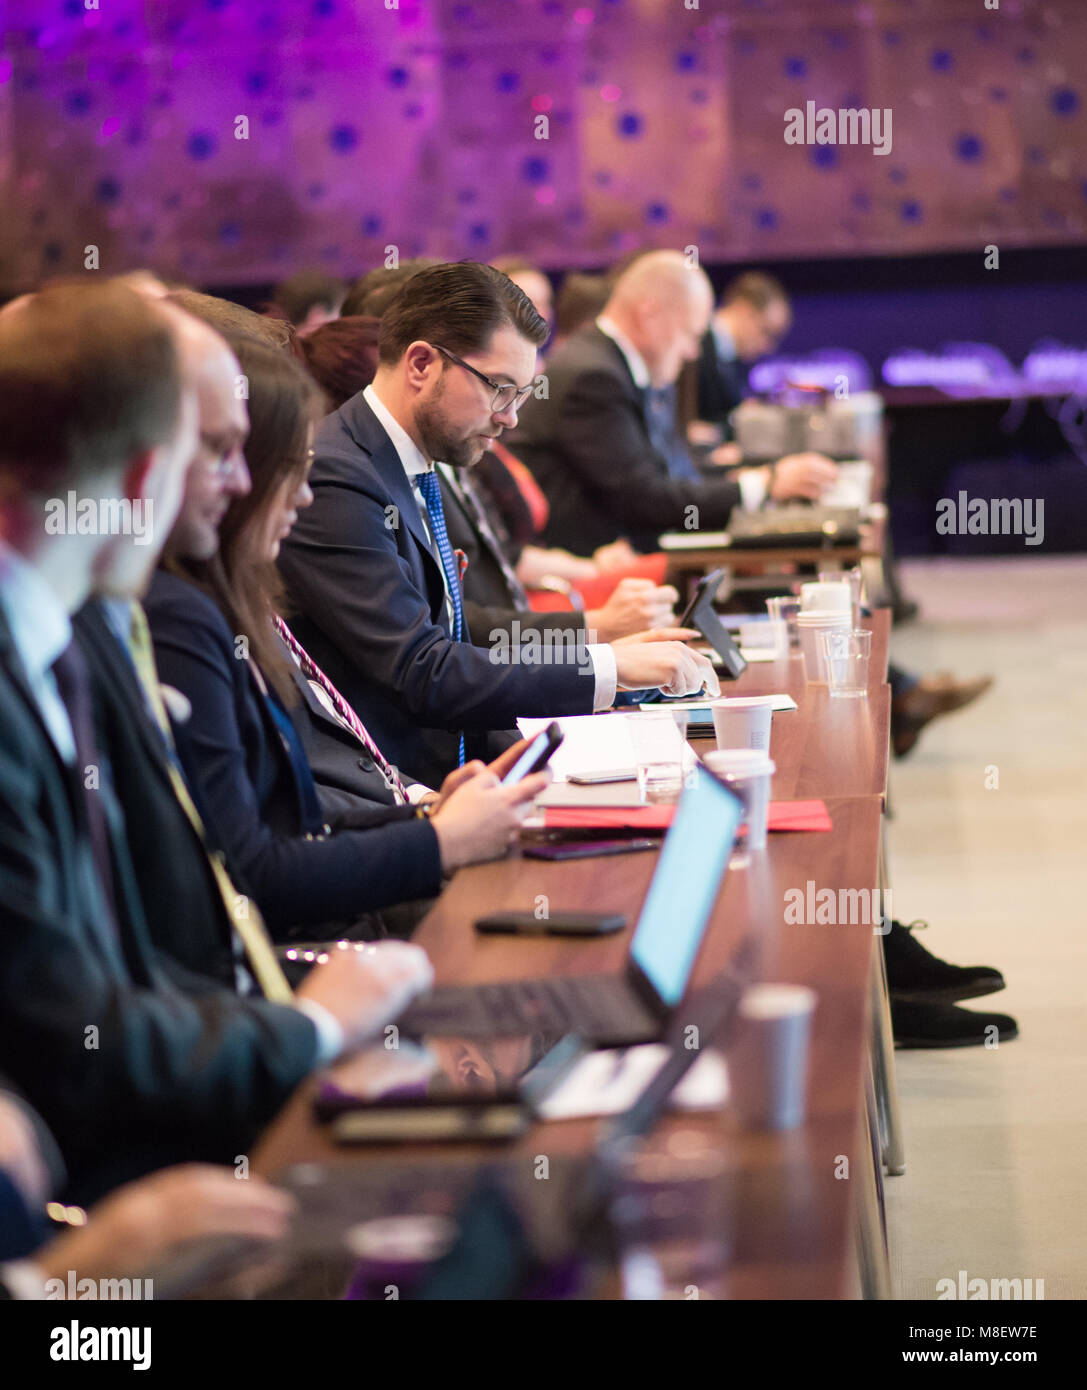 Stockholm, Sweden, March 17, 2018. Sweden Democrats (SD) Election Conference 2018. Party Leader Jimmie Akesson. - Stock Image